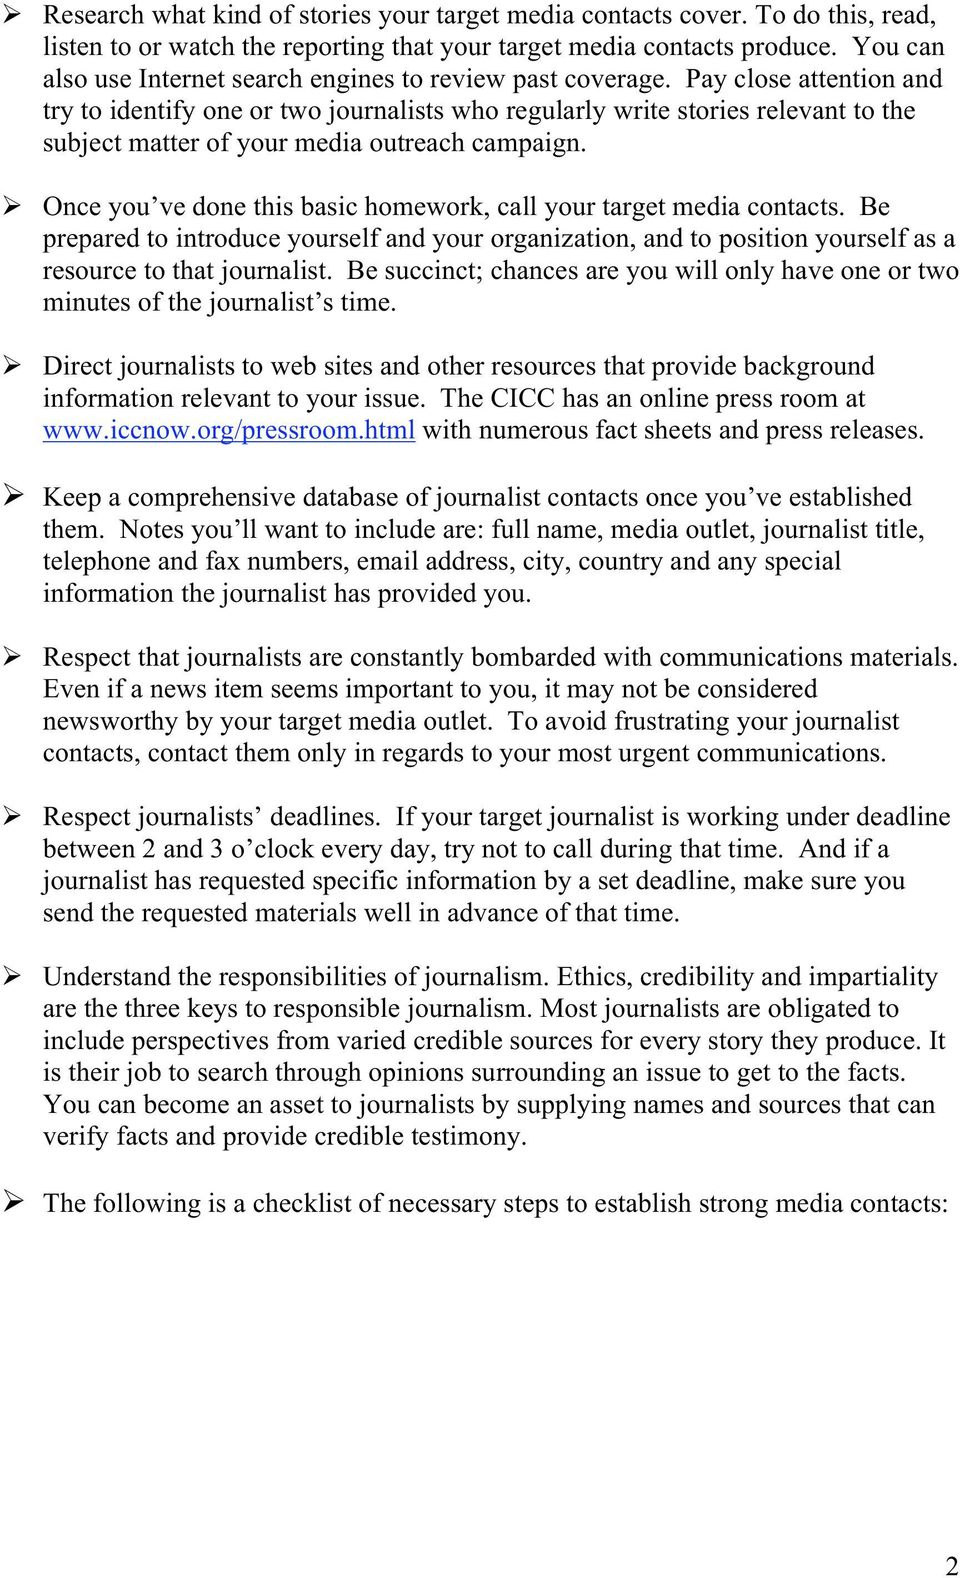 Pay close attention and try to identify one or two journalists who regularly write stories relevant to the subject matter of your media outreach campaign.